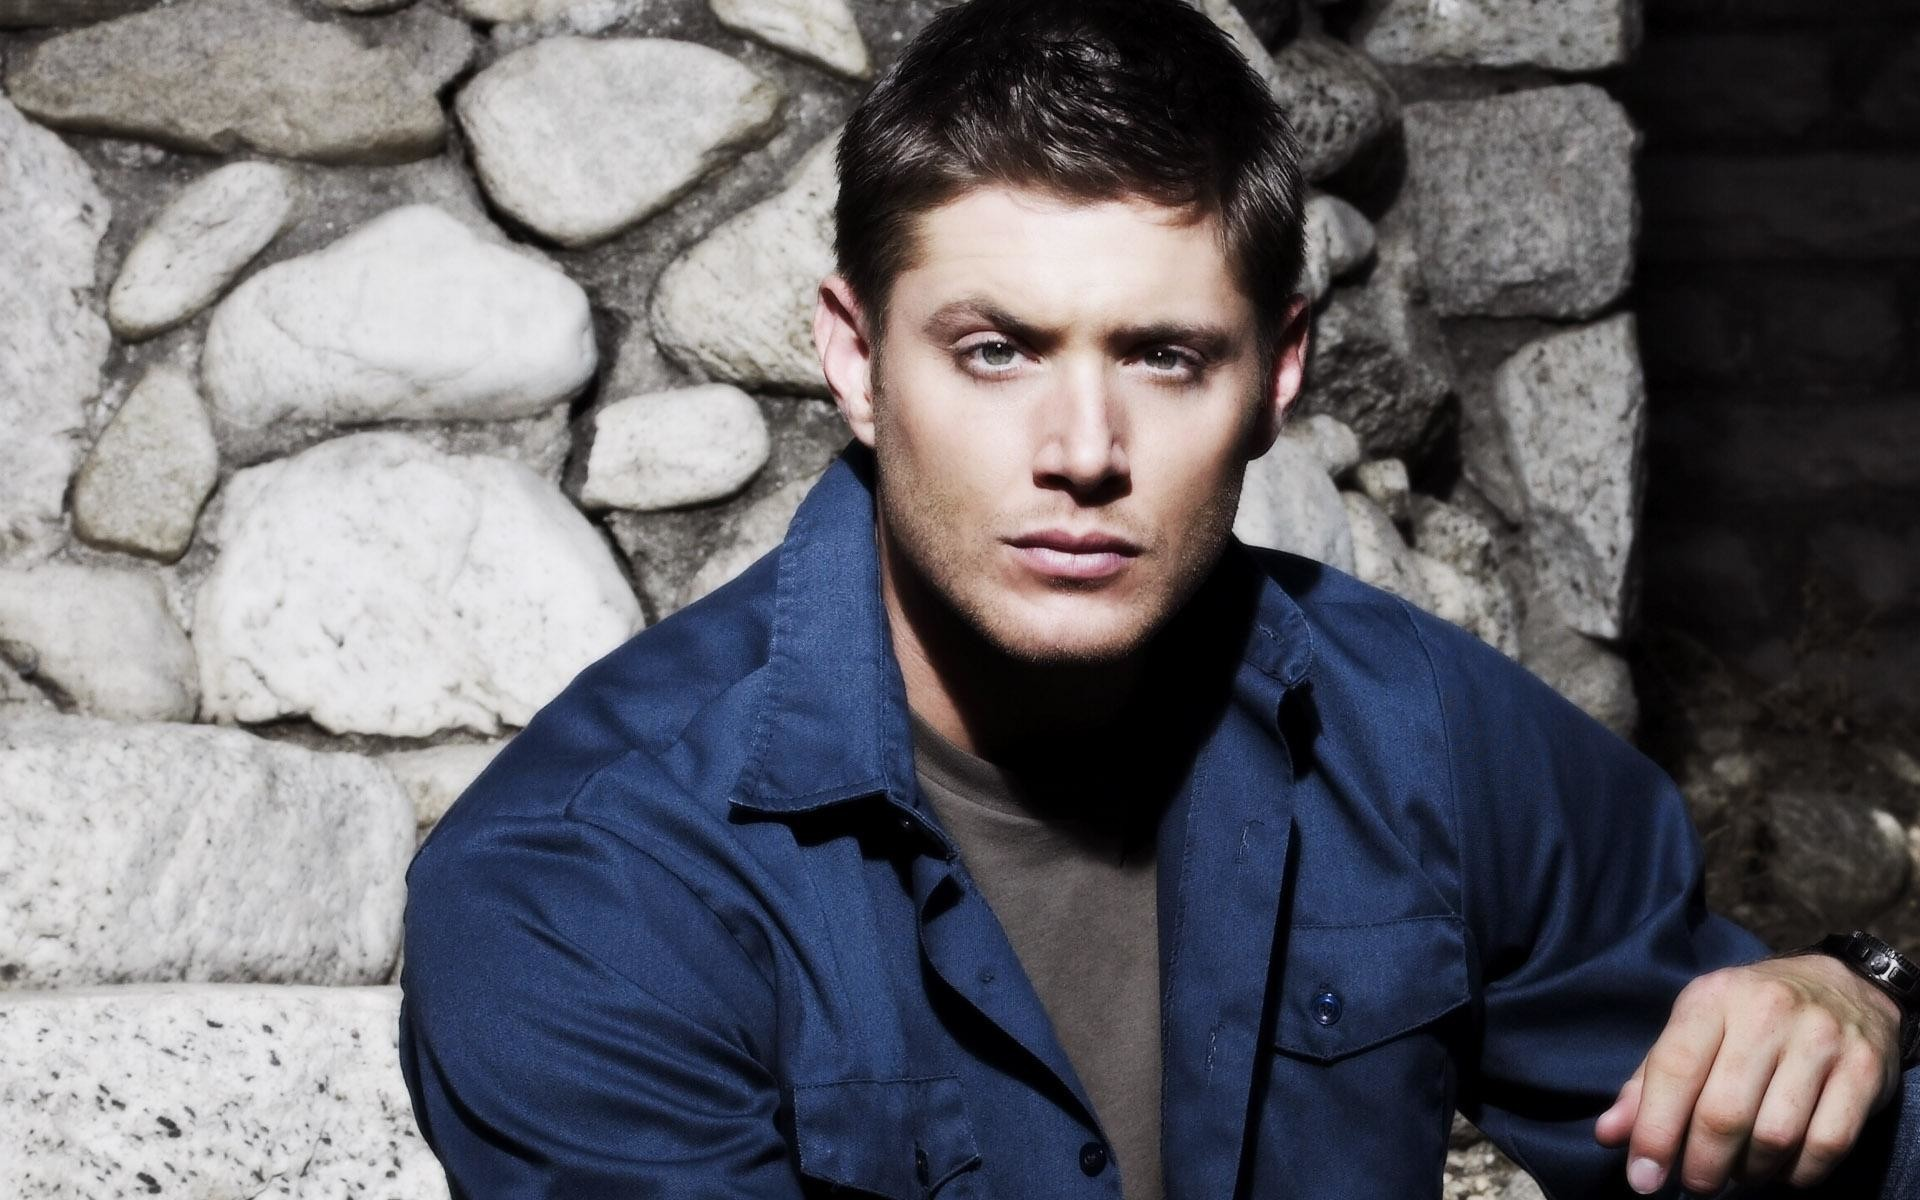 wallpaper.wiki-Dean-Winchester-Widescreen-Background-PIC-WPB0010364